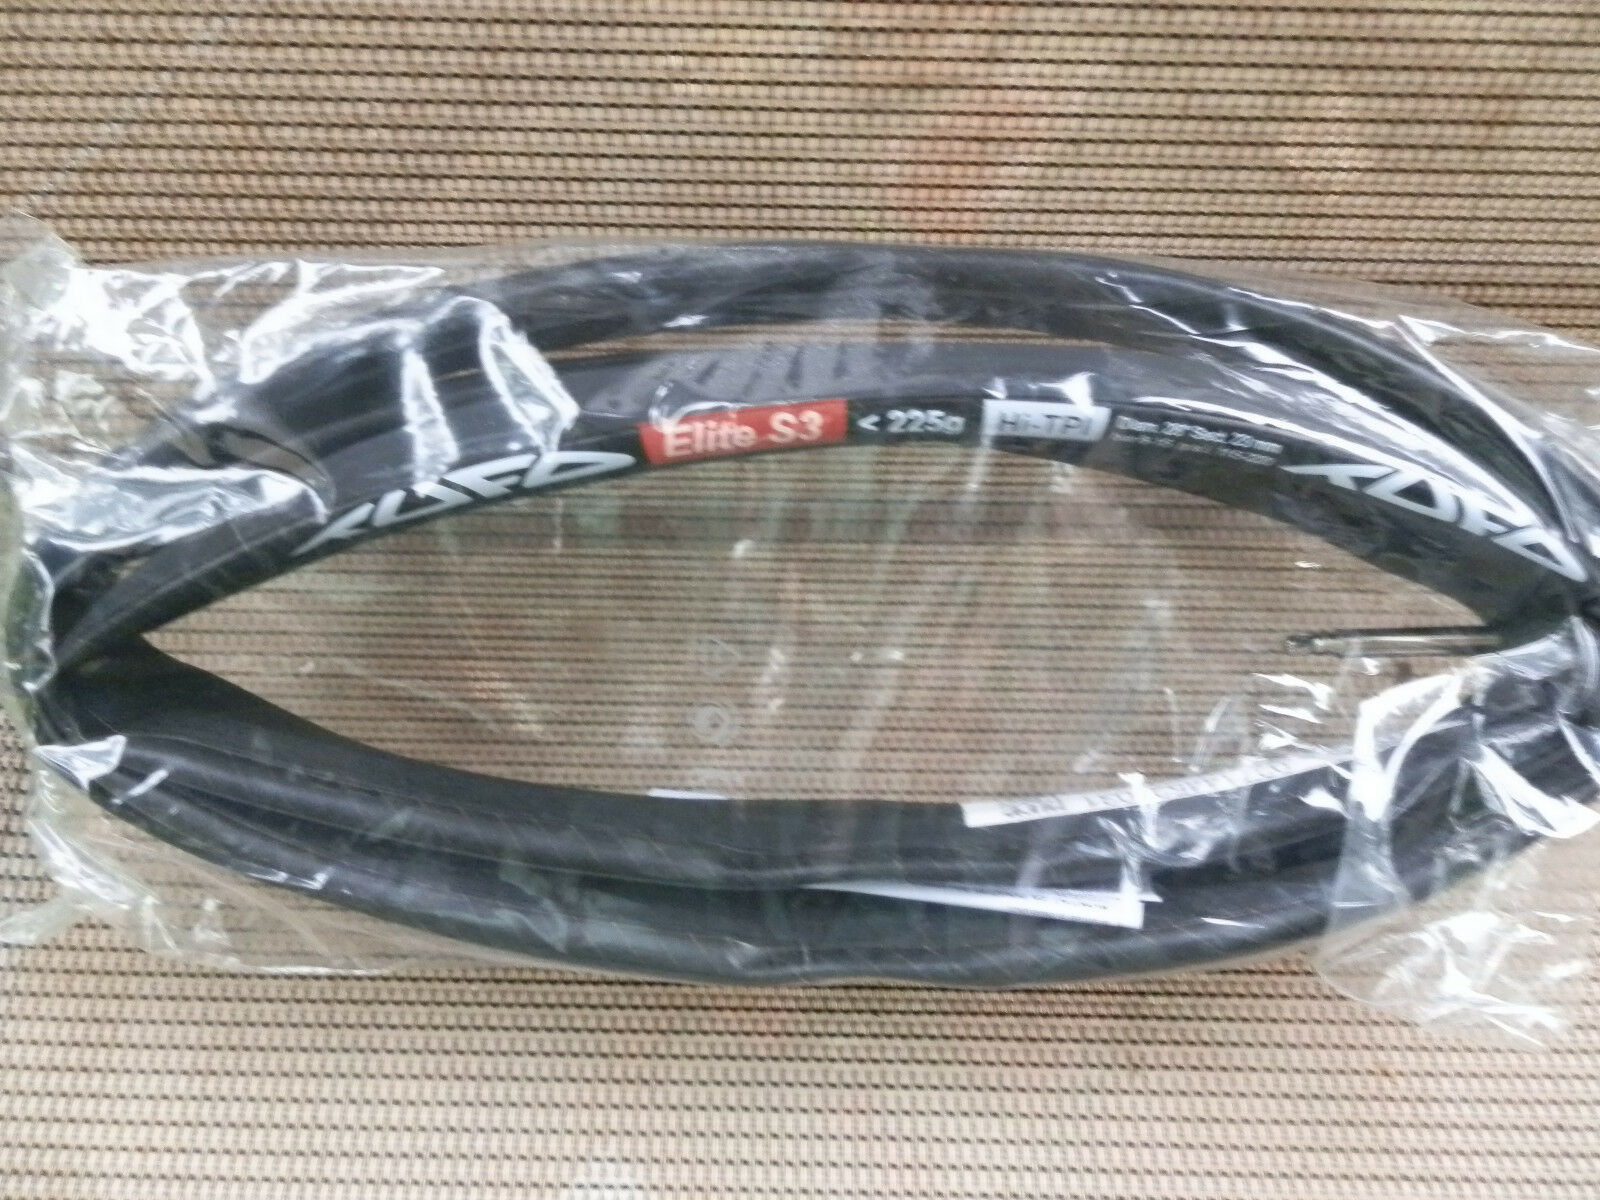 TWO  (  2  )  BRAND NEW  Tufo ELITE S-3  TUBULAR Tires